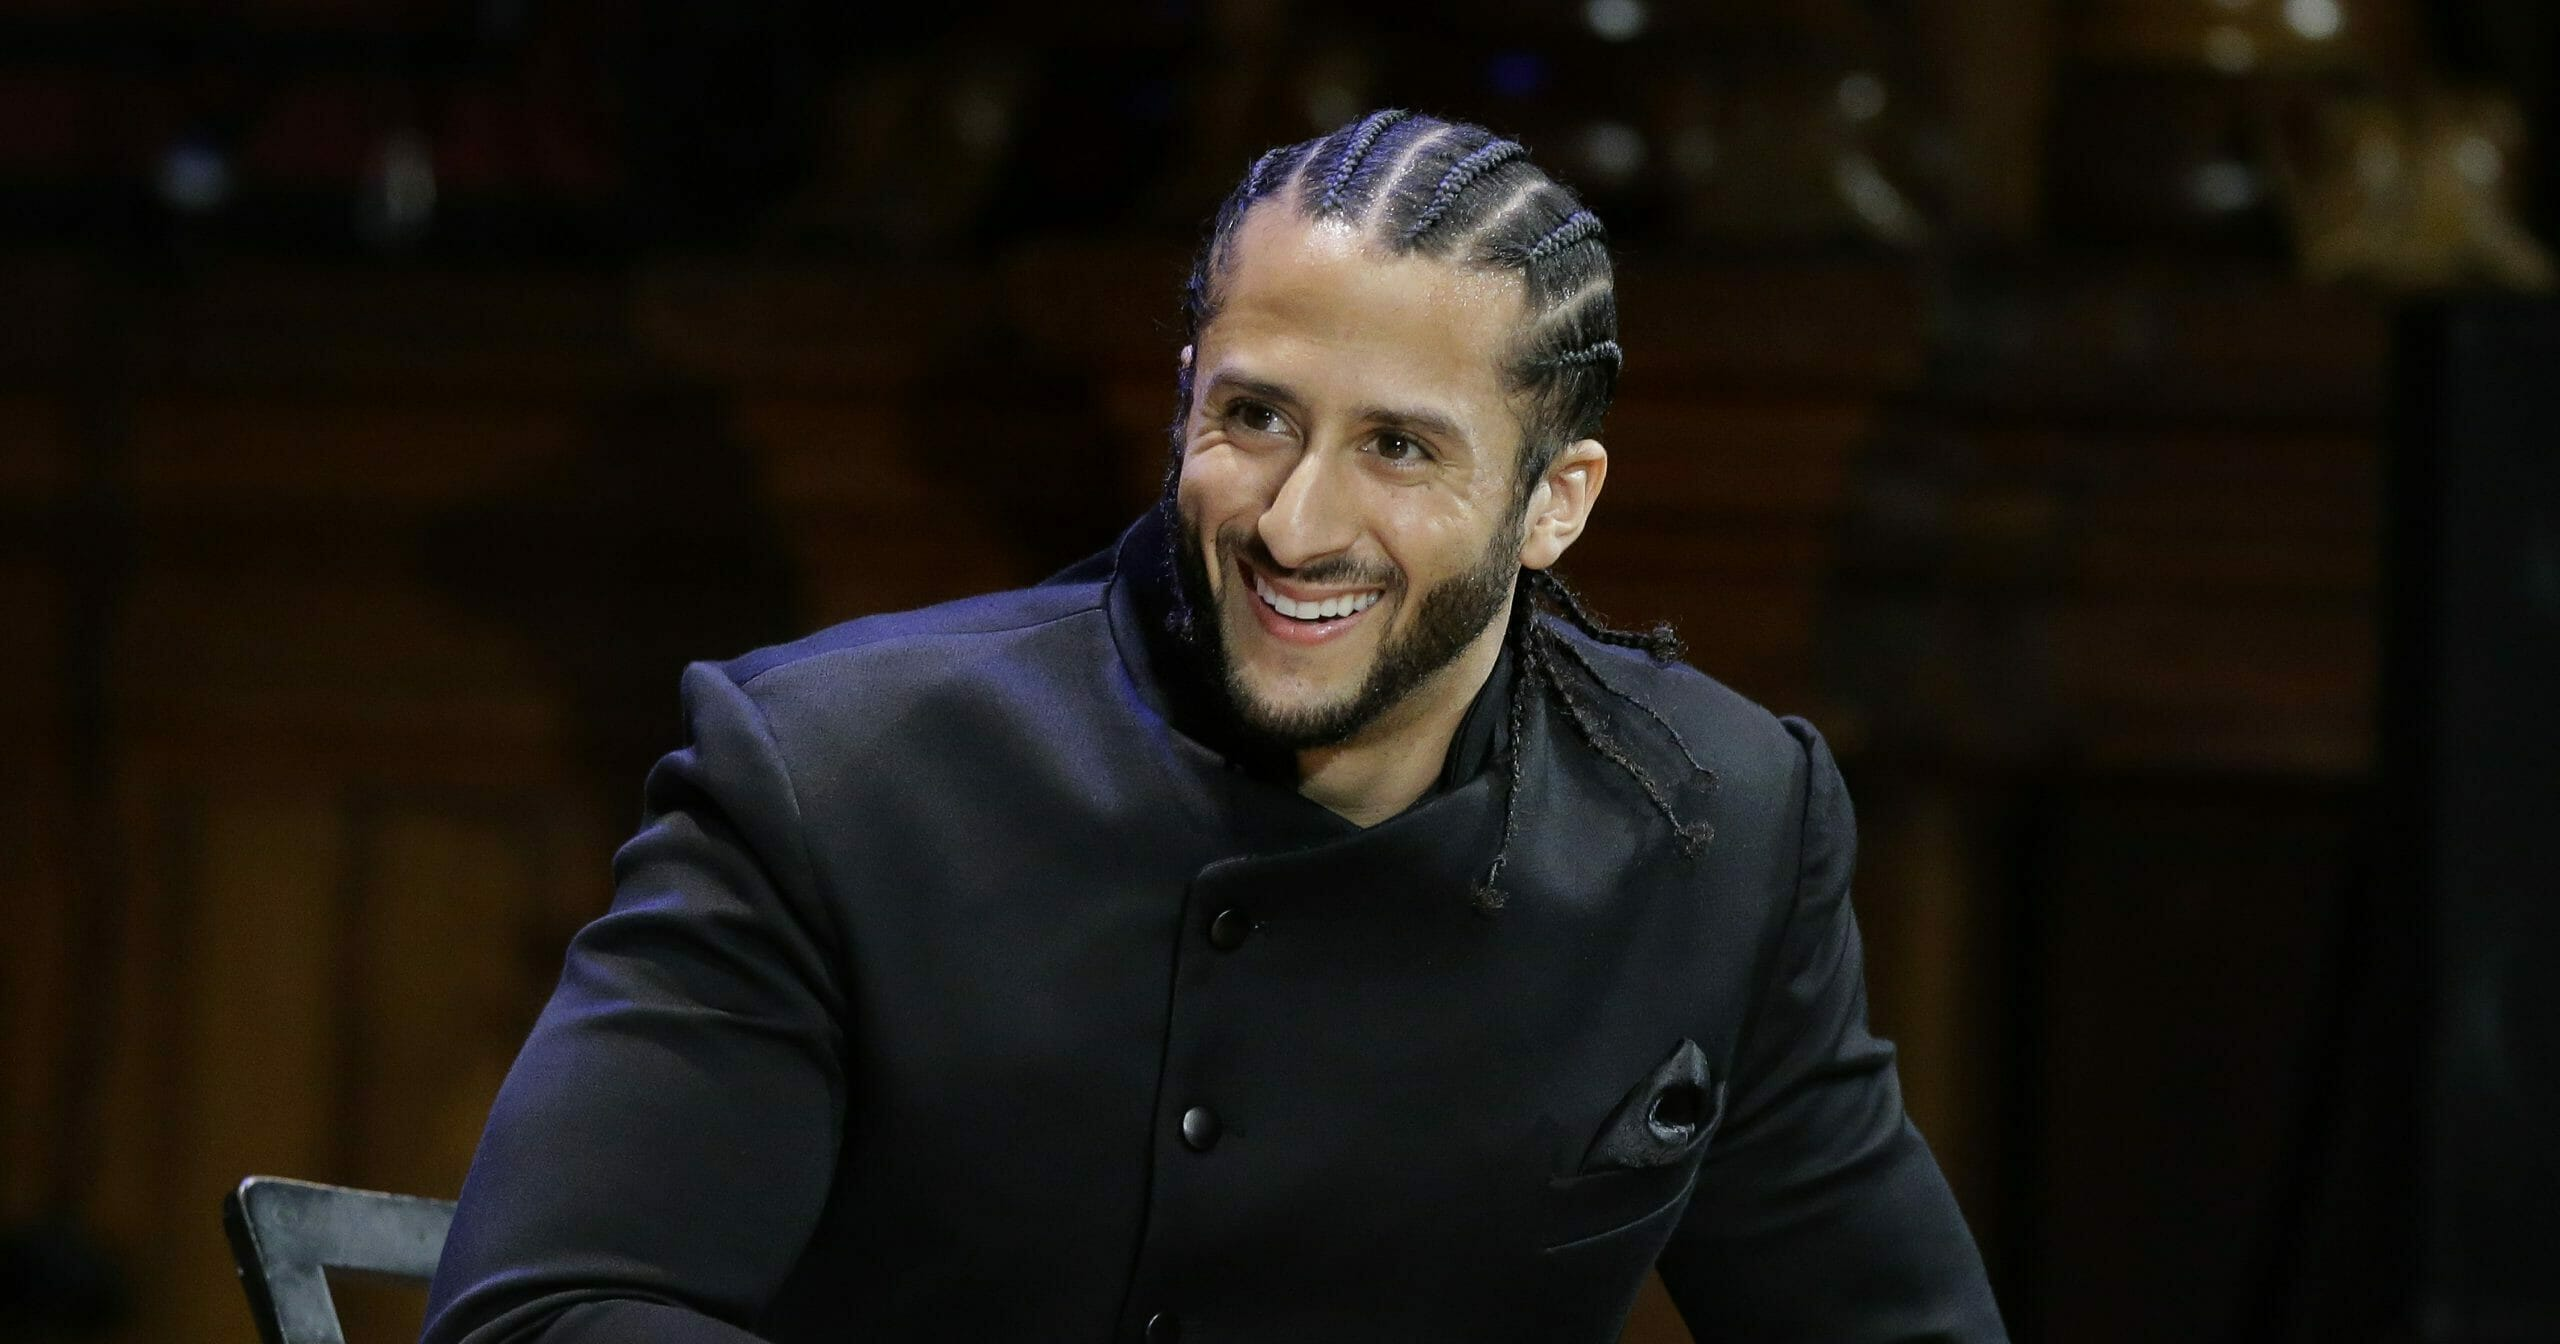 Kaepernick Announces New Book That Will Explain His 'Evolution' to Anthem Protester